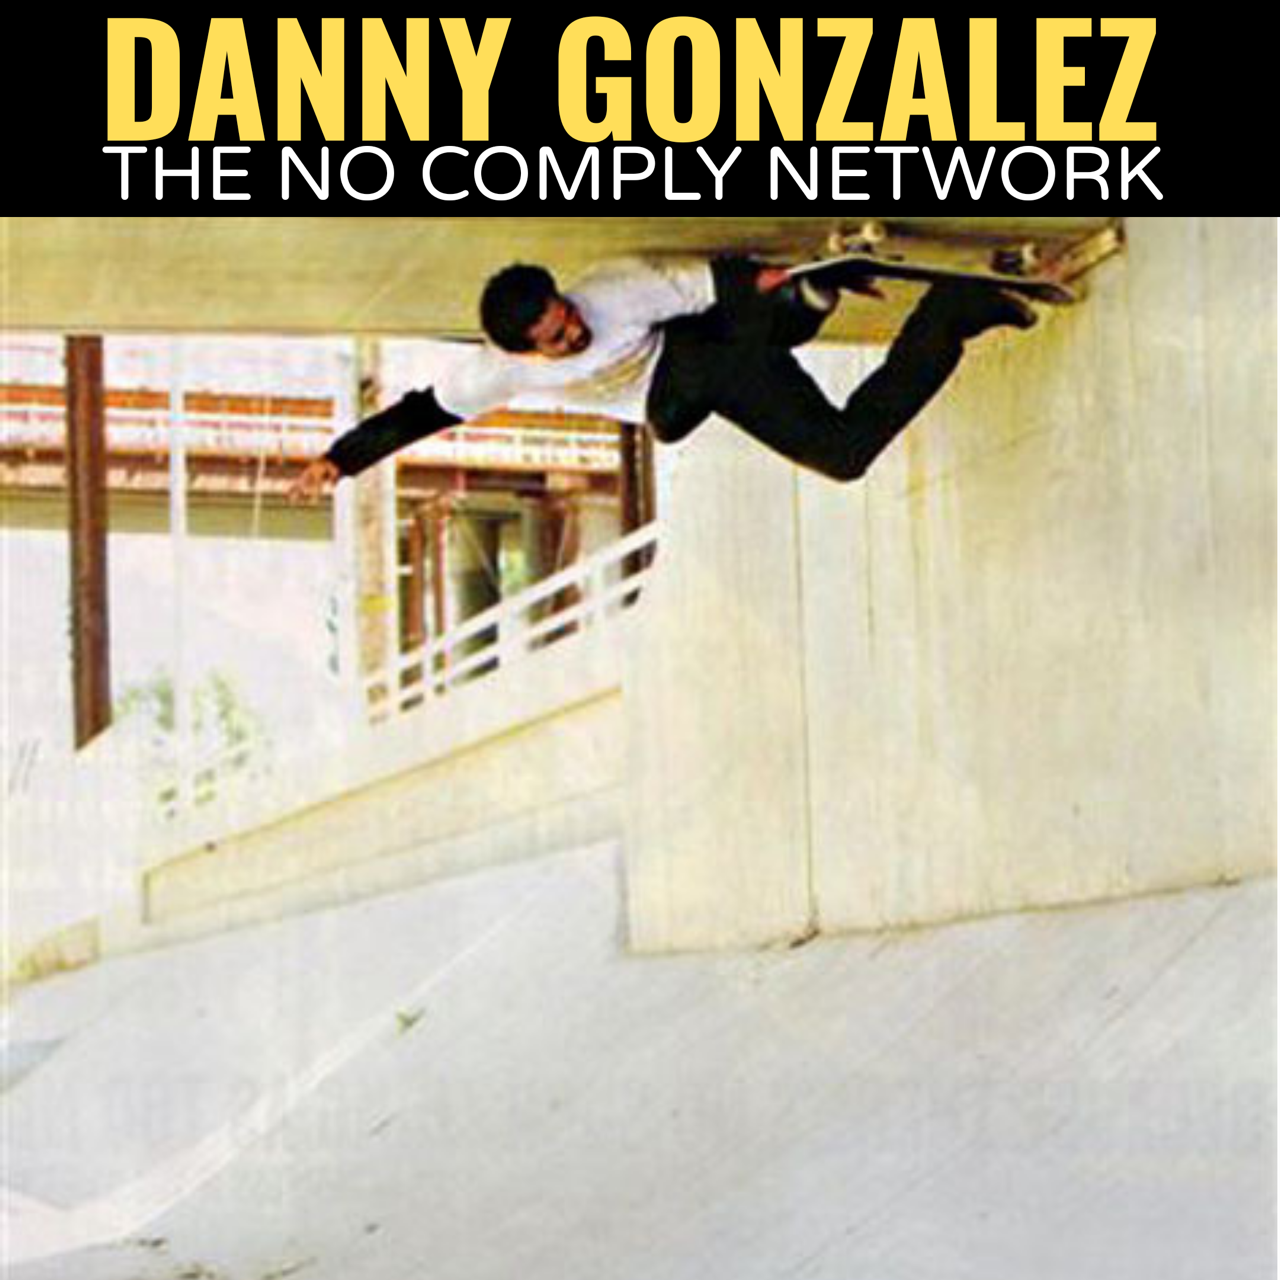 Danny Gonzalez The No Comply Network Member Graphic